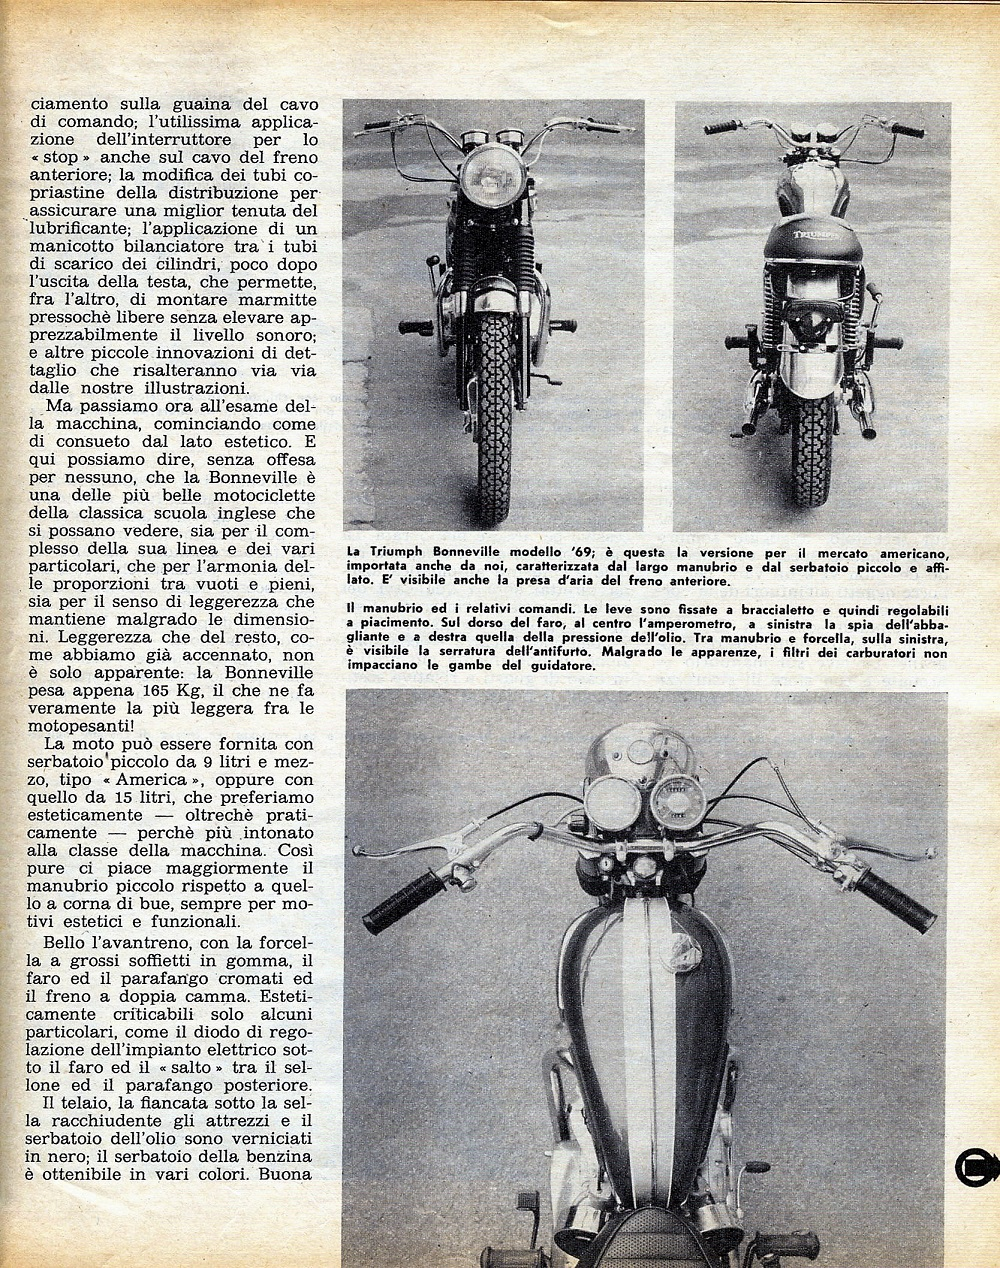 1969 Triumph Bonneville road test. 2.jpg